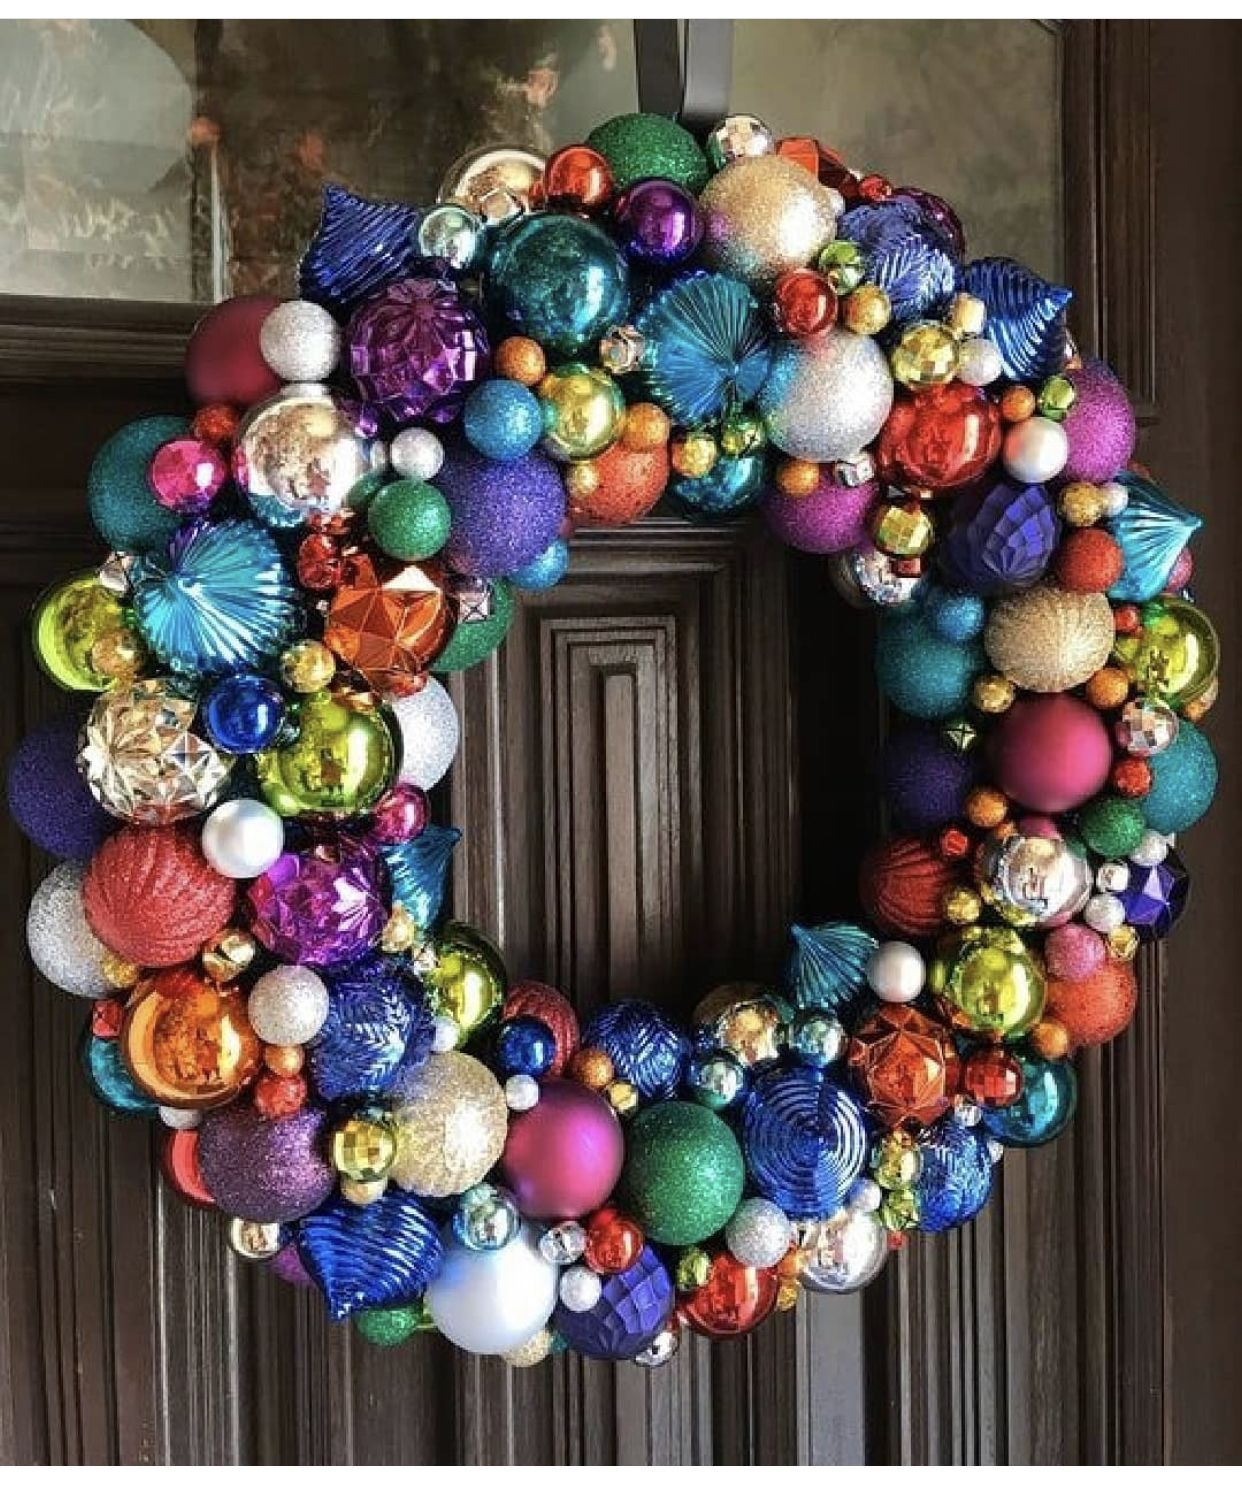 Pin By Michelle Irby On Ho3 Christmas Ornament Wreath Ornament Wreath Rainbows Christmas